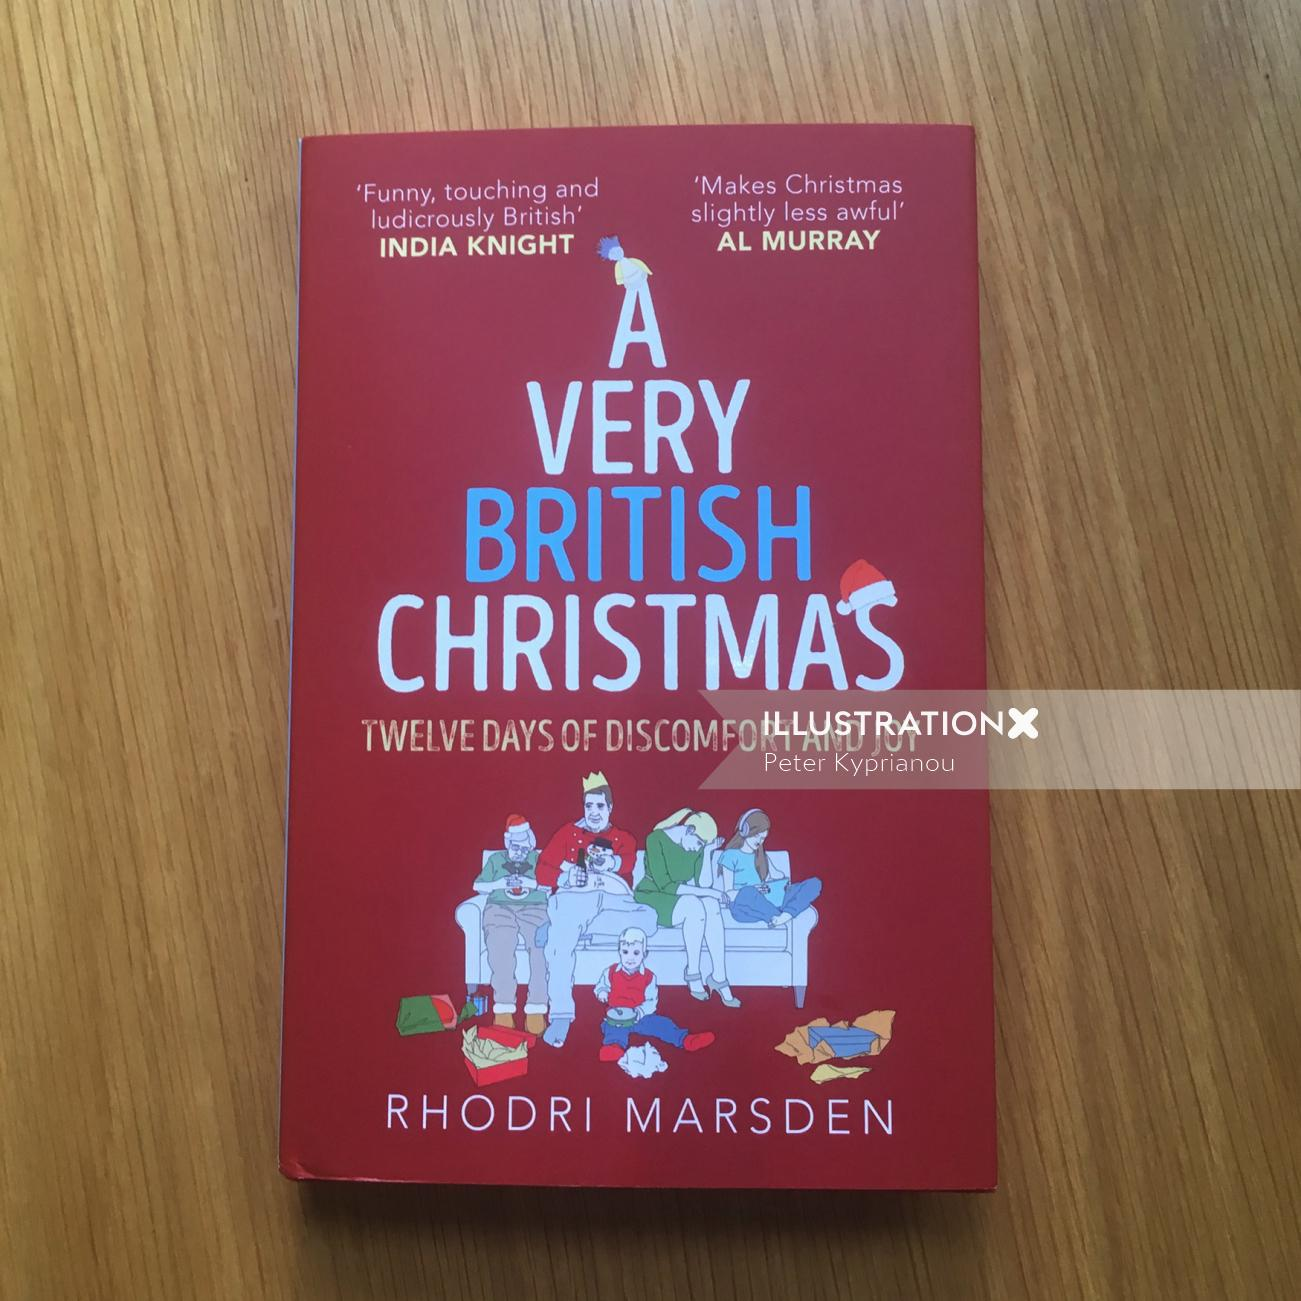 Book cover design of very British Christmas